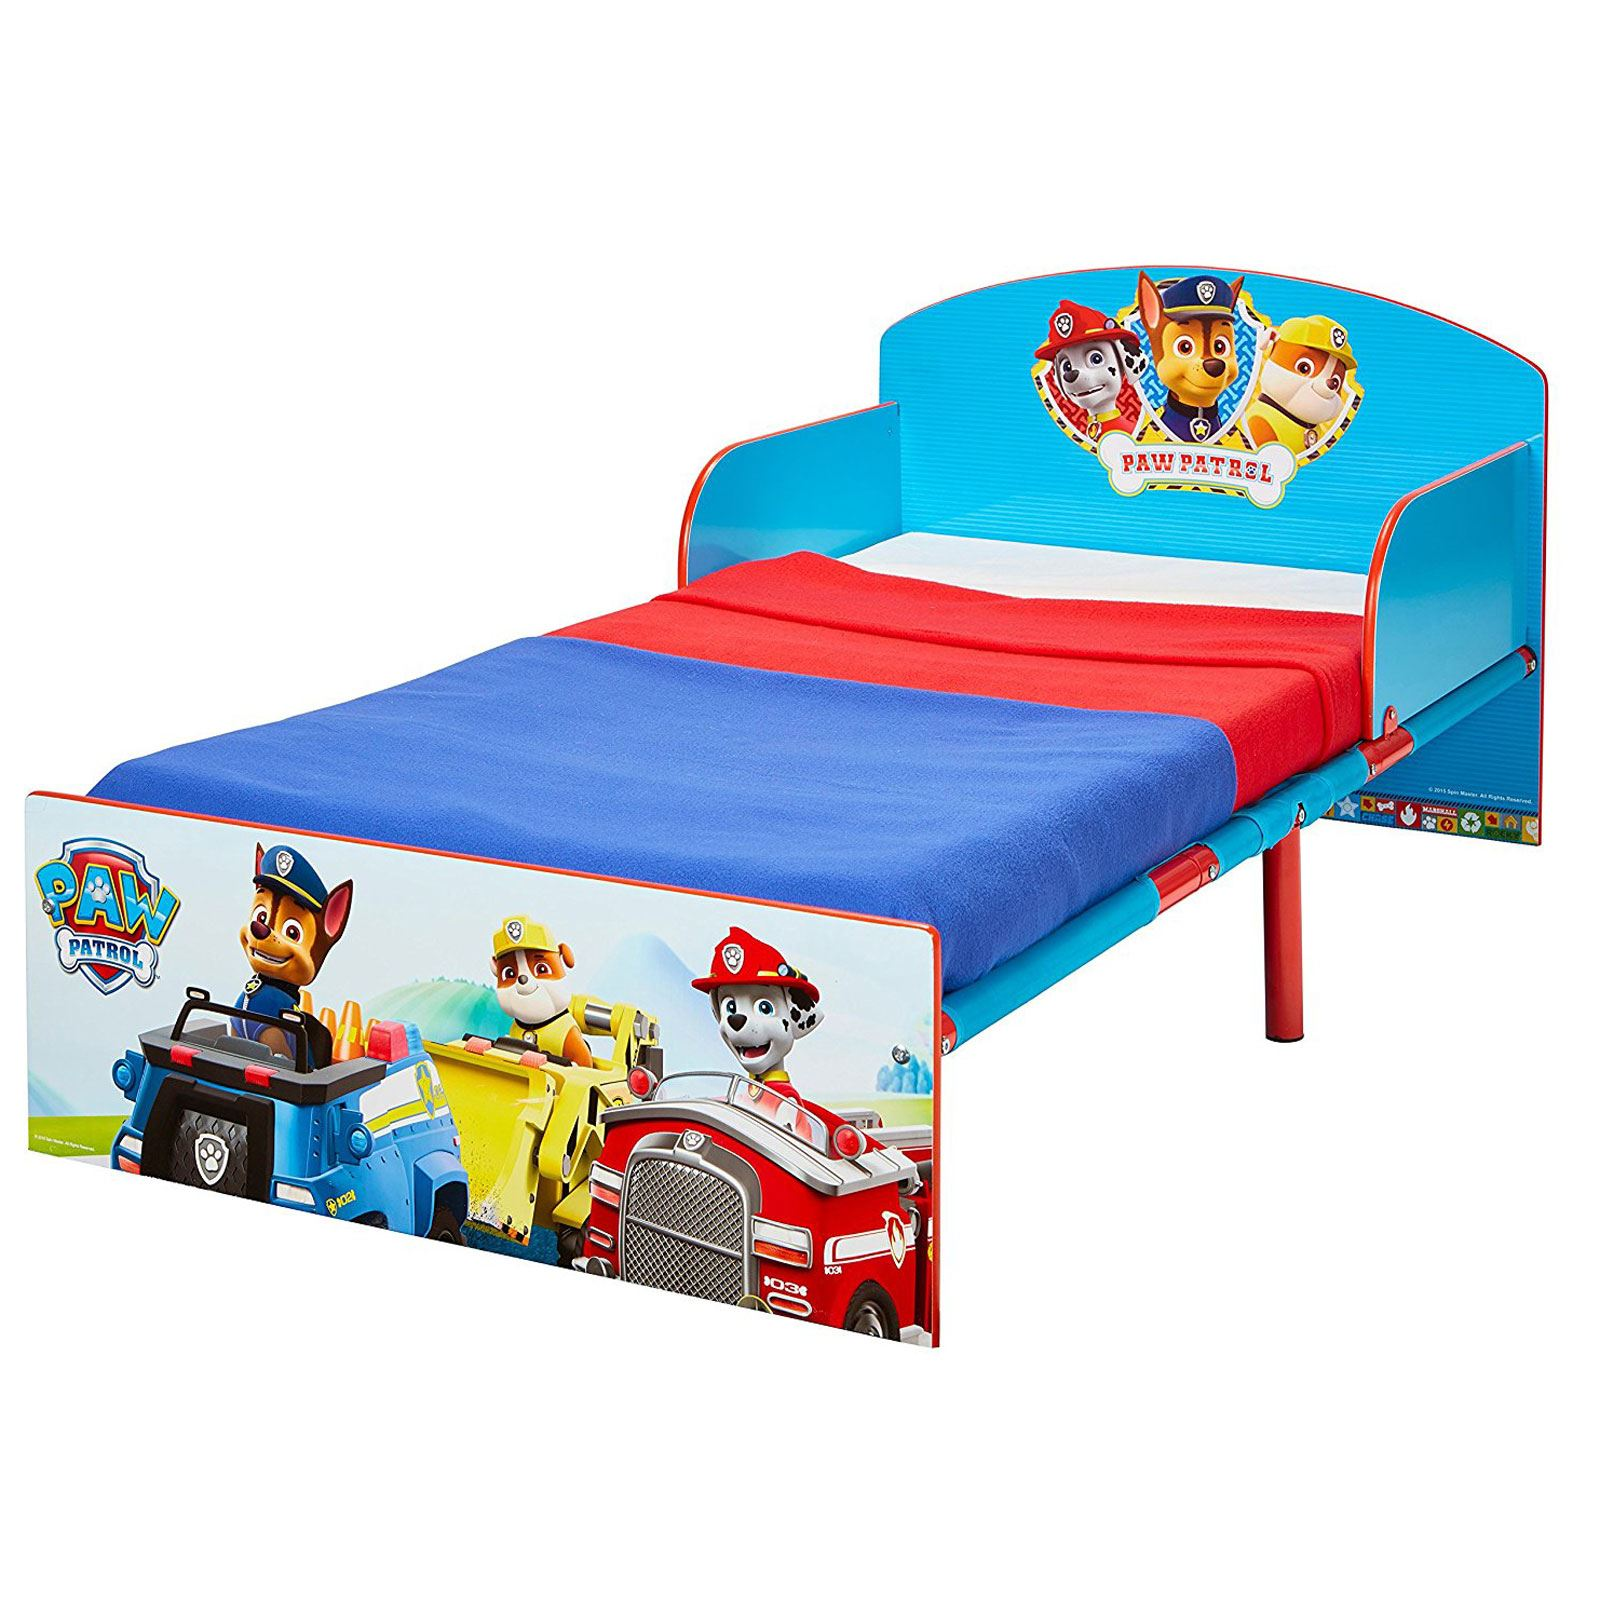 OFFICIAL PAW PATROL TODDLER BED WITH DELUXE FOAM MATTRESS FREE P NEW